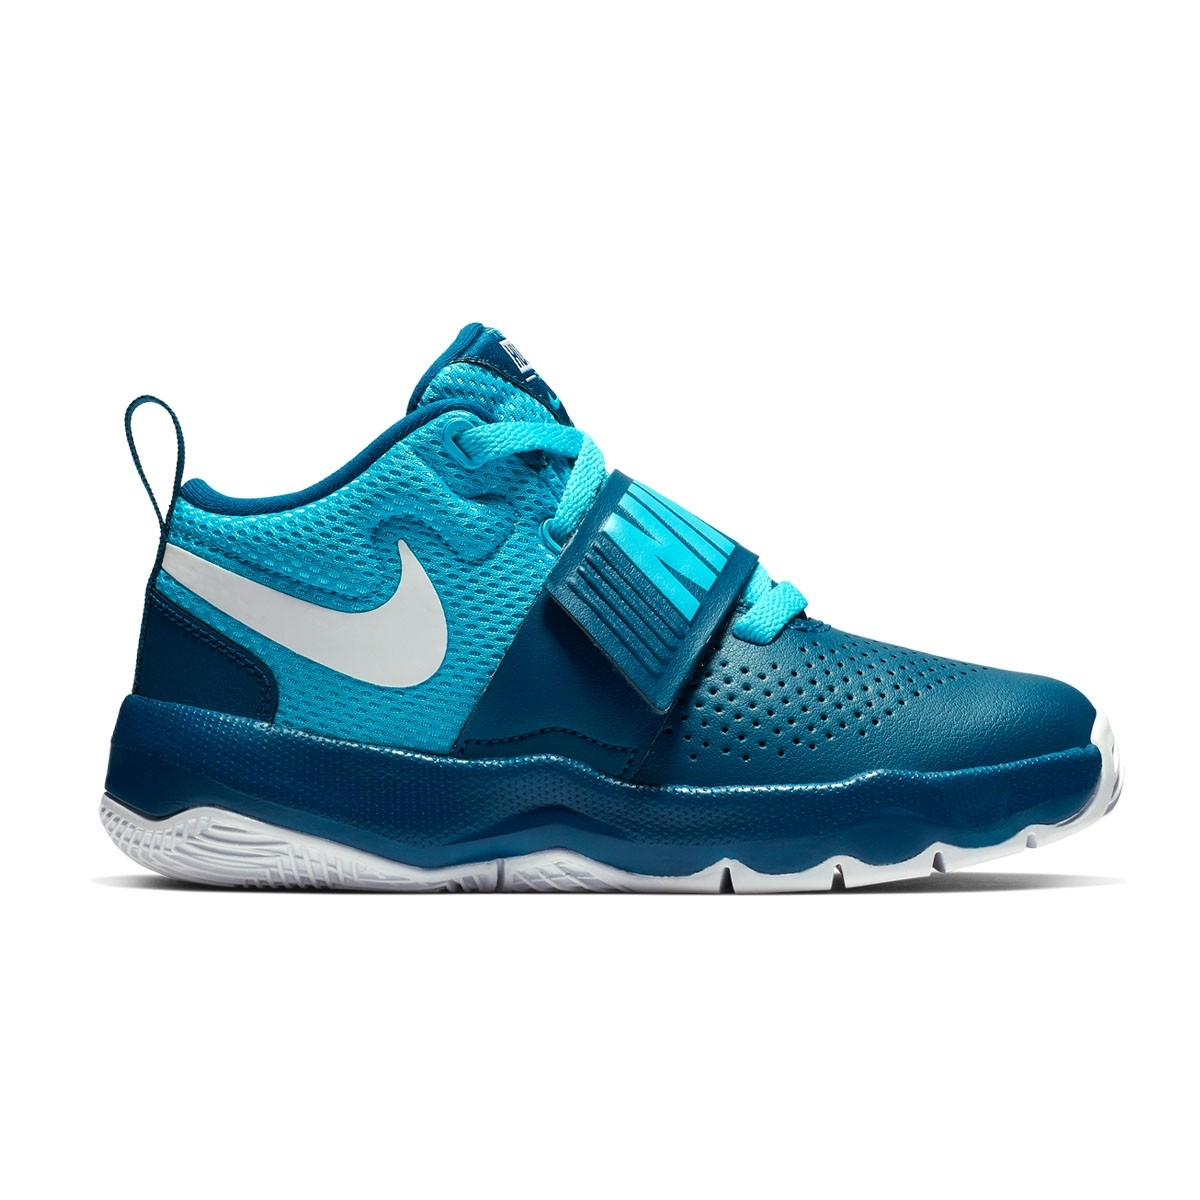 Nike Team Hustle D8 'Baby blue'